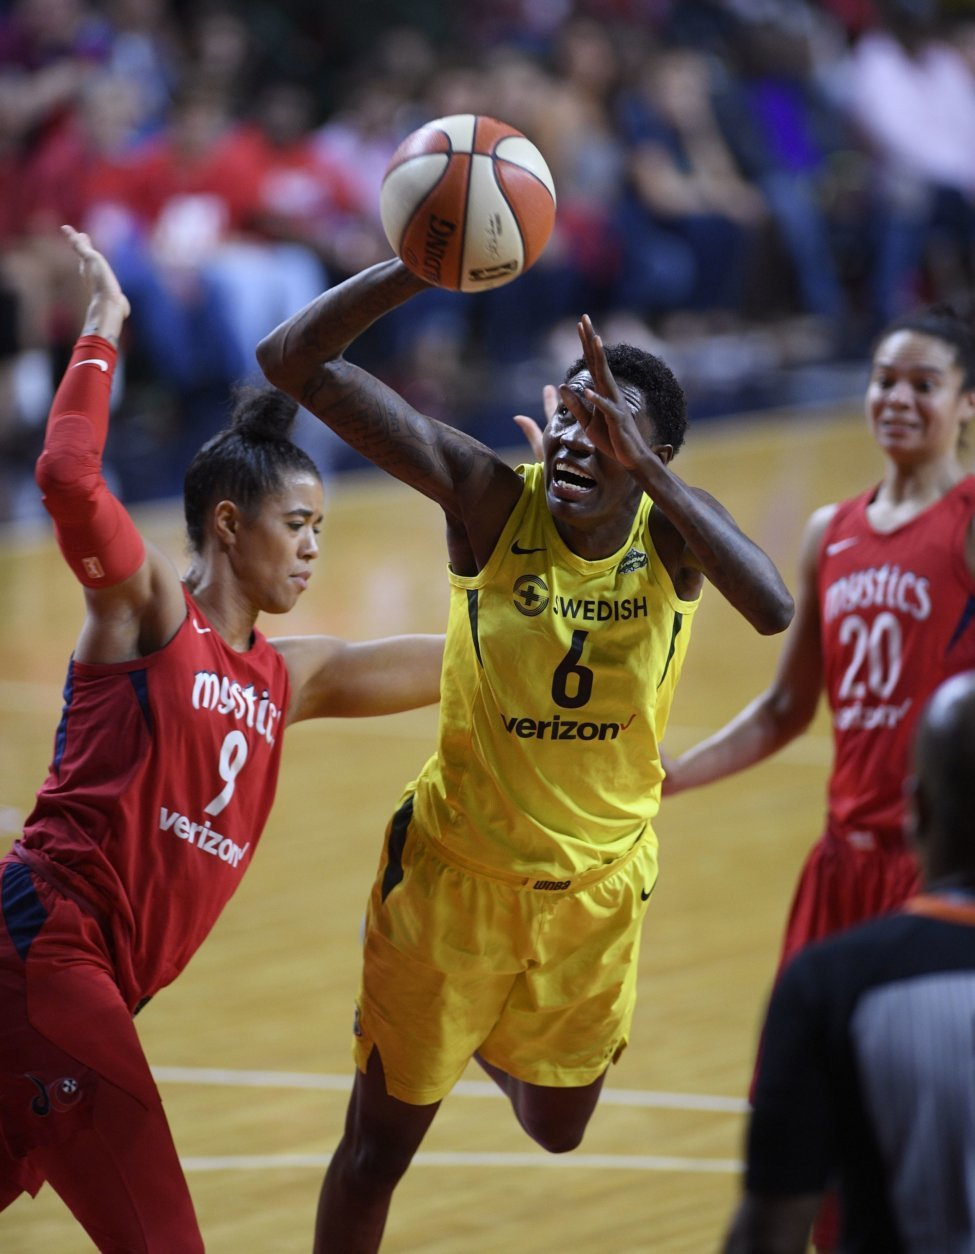 Seattle Storm forward Natasha Howard (6) goes to the basket against Washington Mystics guard Natasha Cloud (9) during the first half of Game 3 of the WNBA basketball finals, Wednesday, Sept. 12, 2018, in Fairfax, Va. Cloud was charged for a foul on the play. Also seen is Mystics guard Kristi Toliver (20). (AP Photo/Nick Wass)